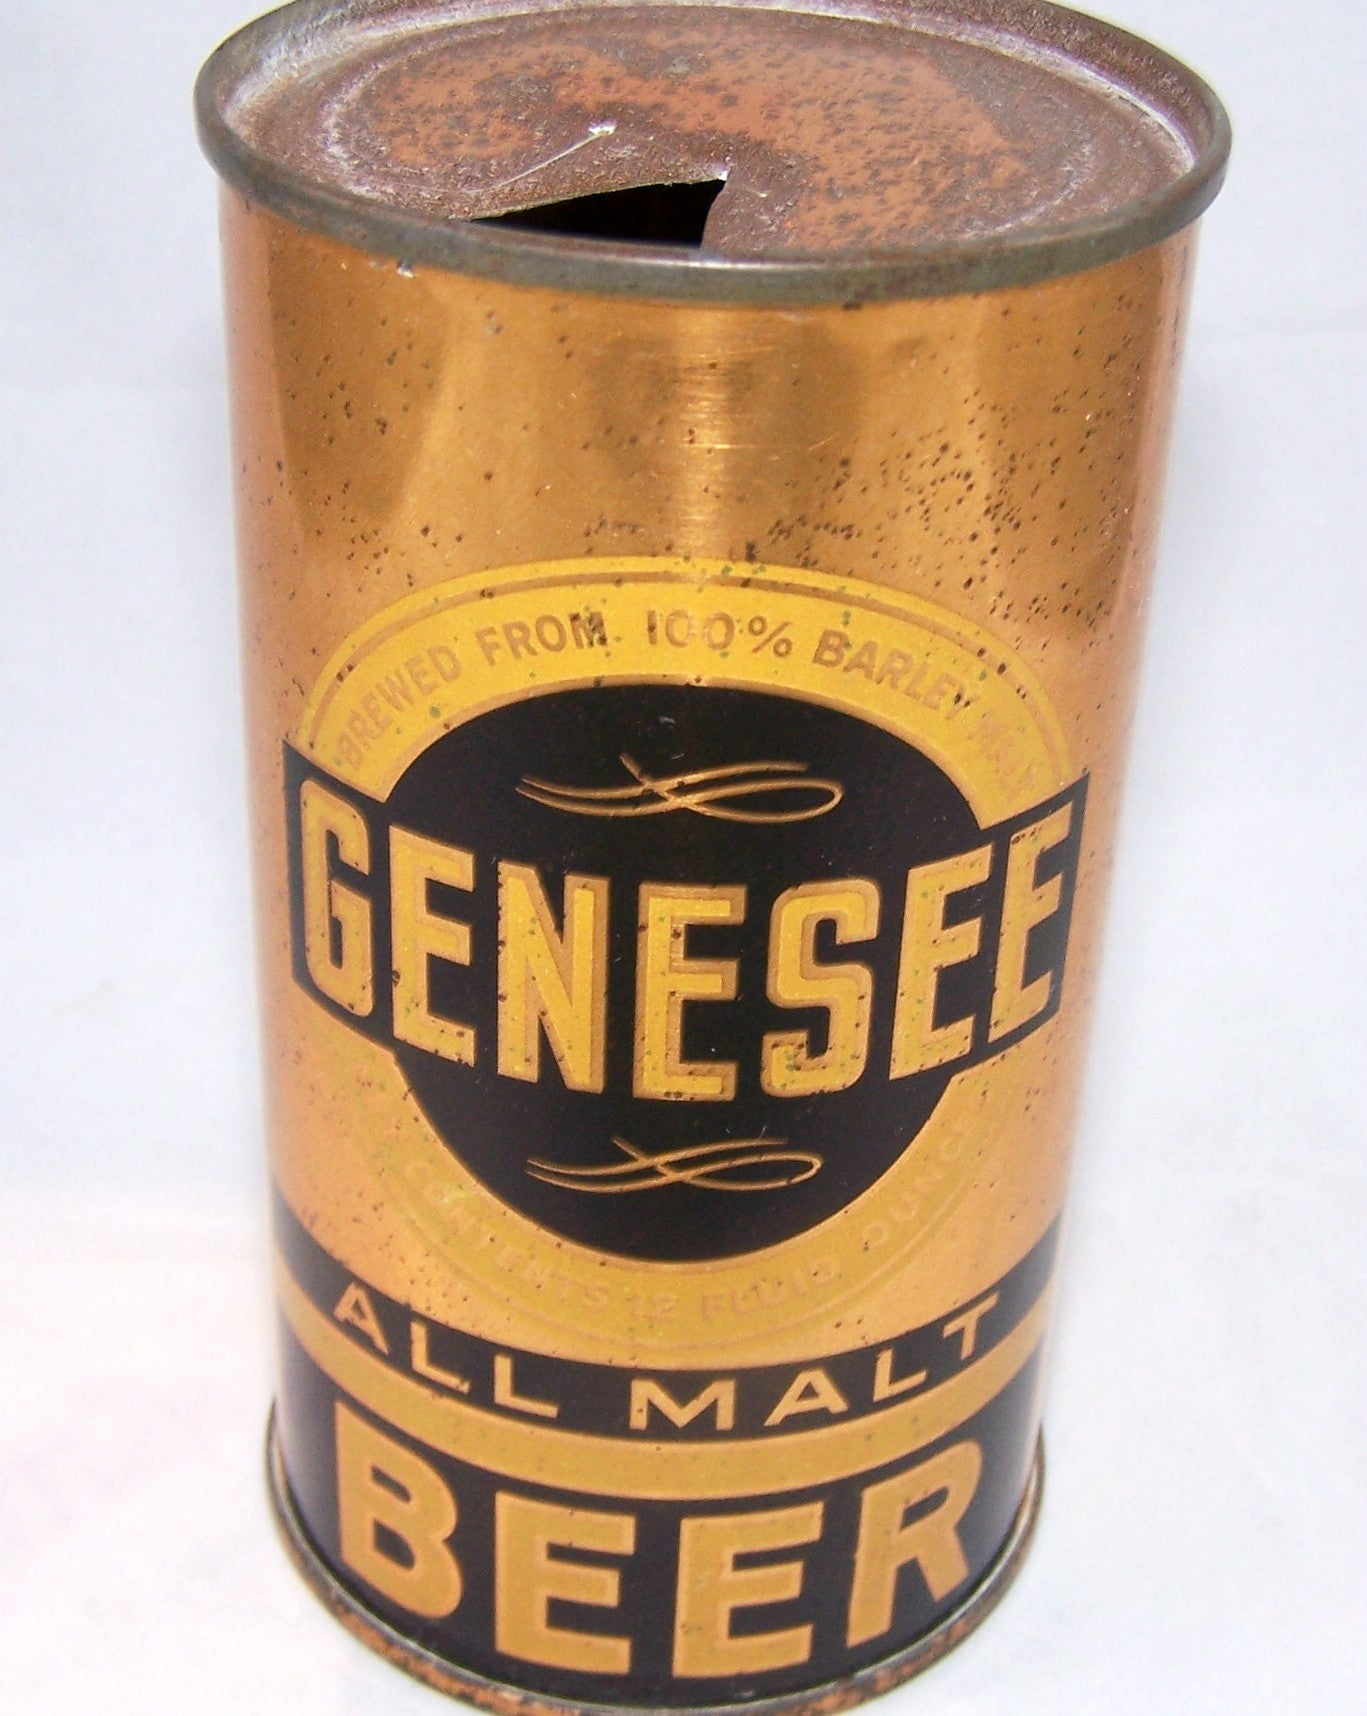 Genesee All Malt Beer, Lilek # 332, Grade 1 to 1/1- Sold on 12/20/16